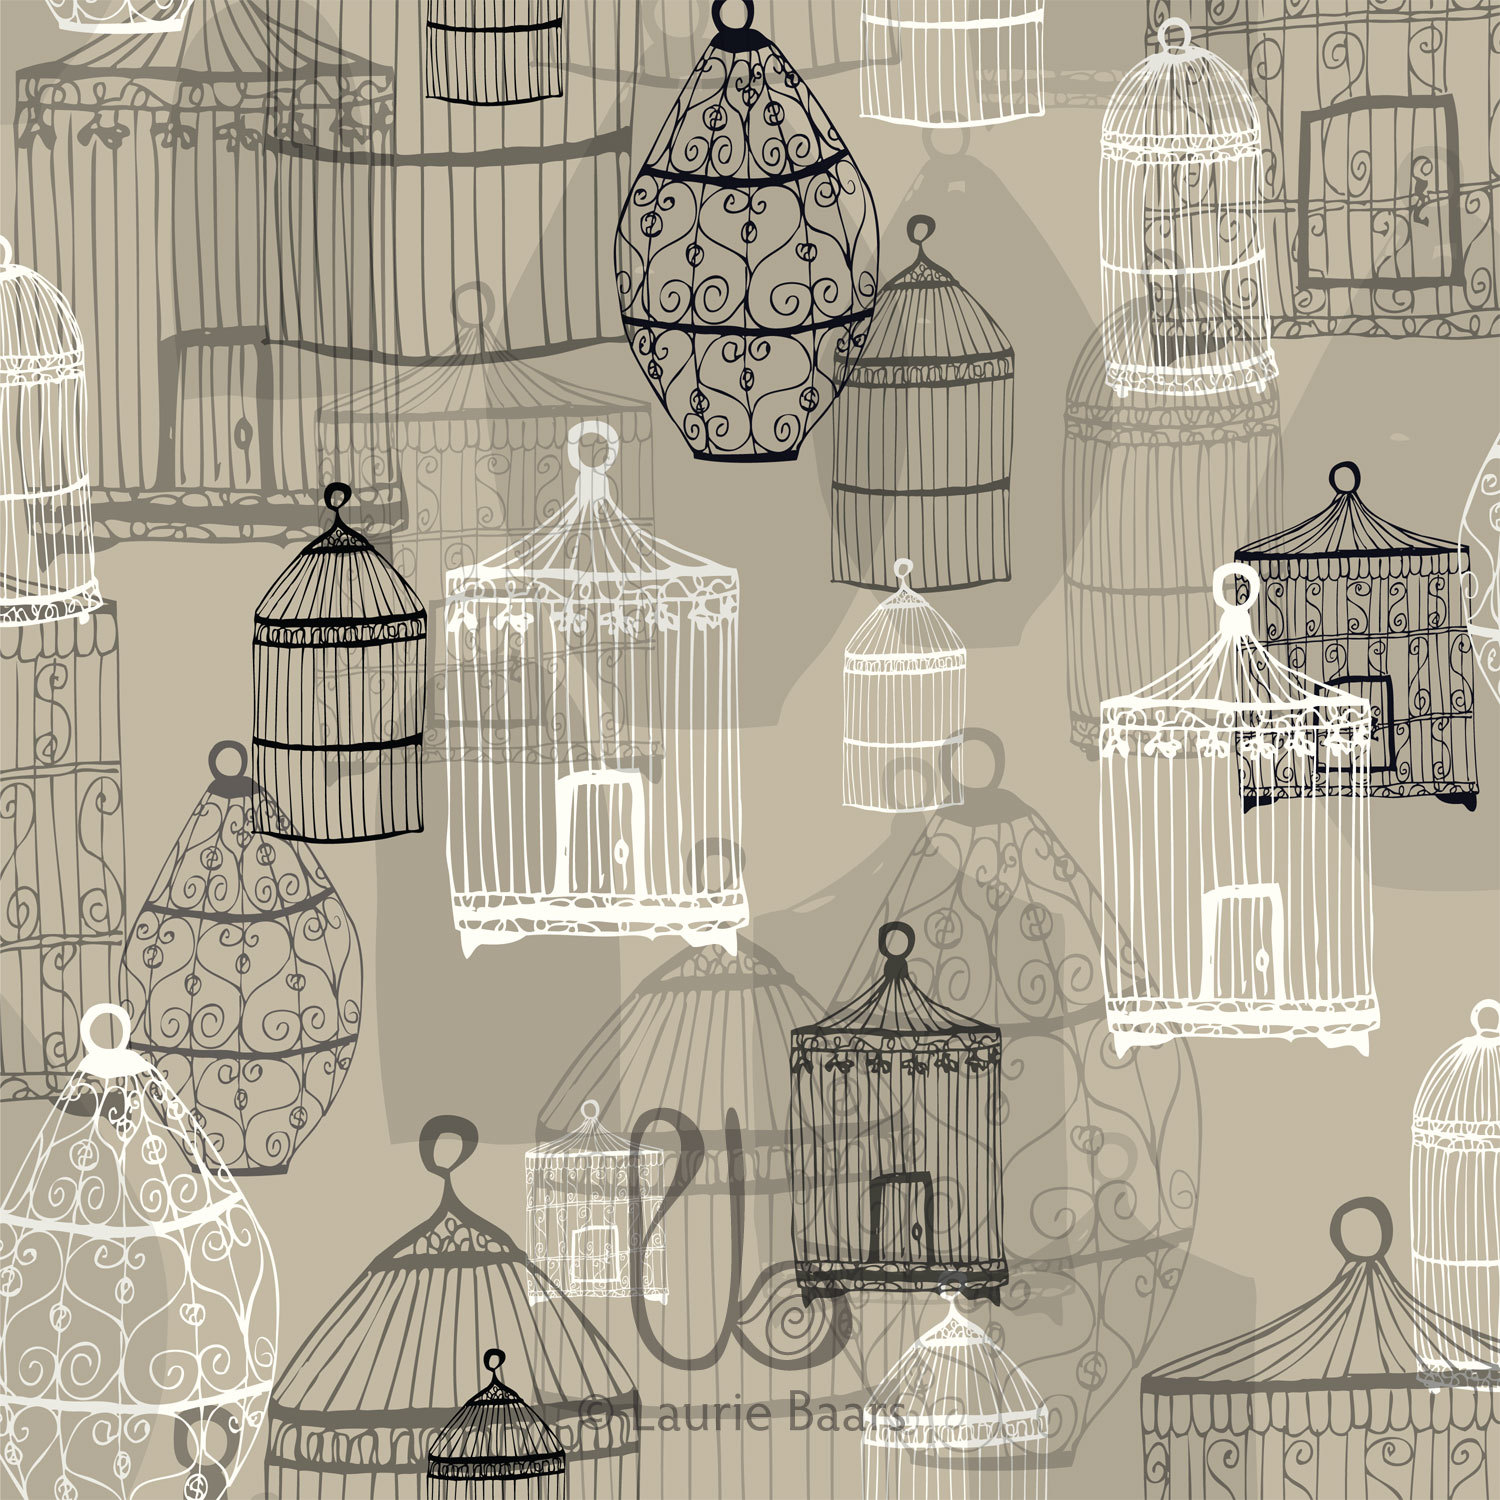 Birdcages by Laurie Baars